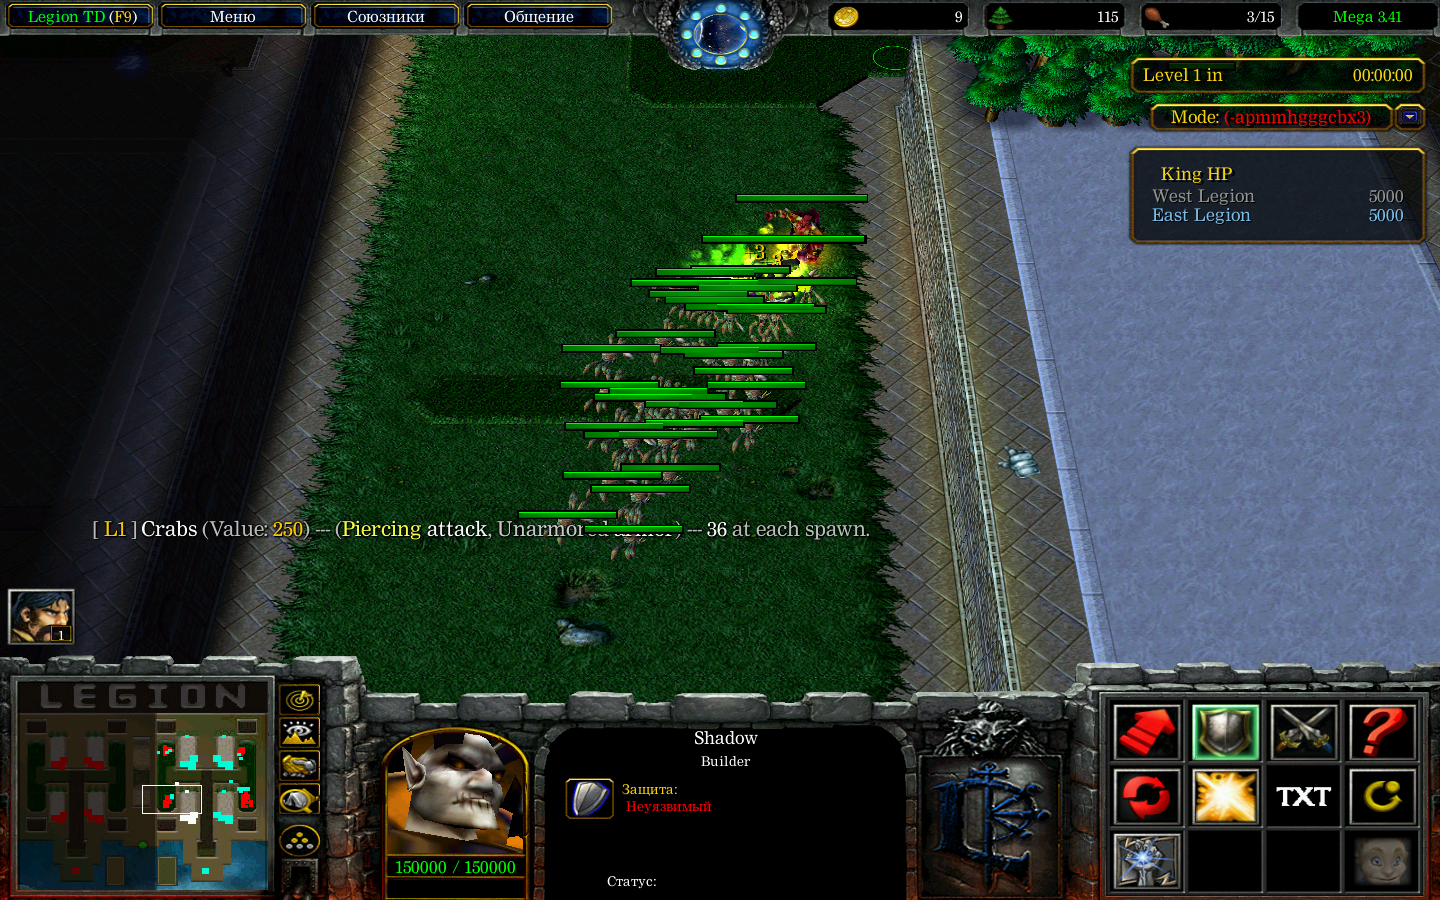 This map is a classic maul style tower defense with strict waypoints teammazing and some nostalgia